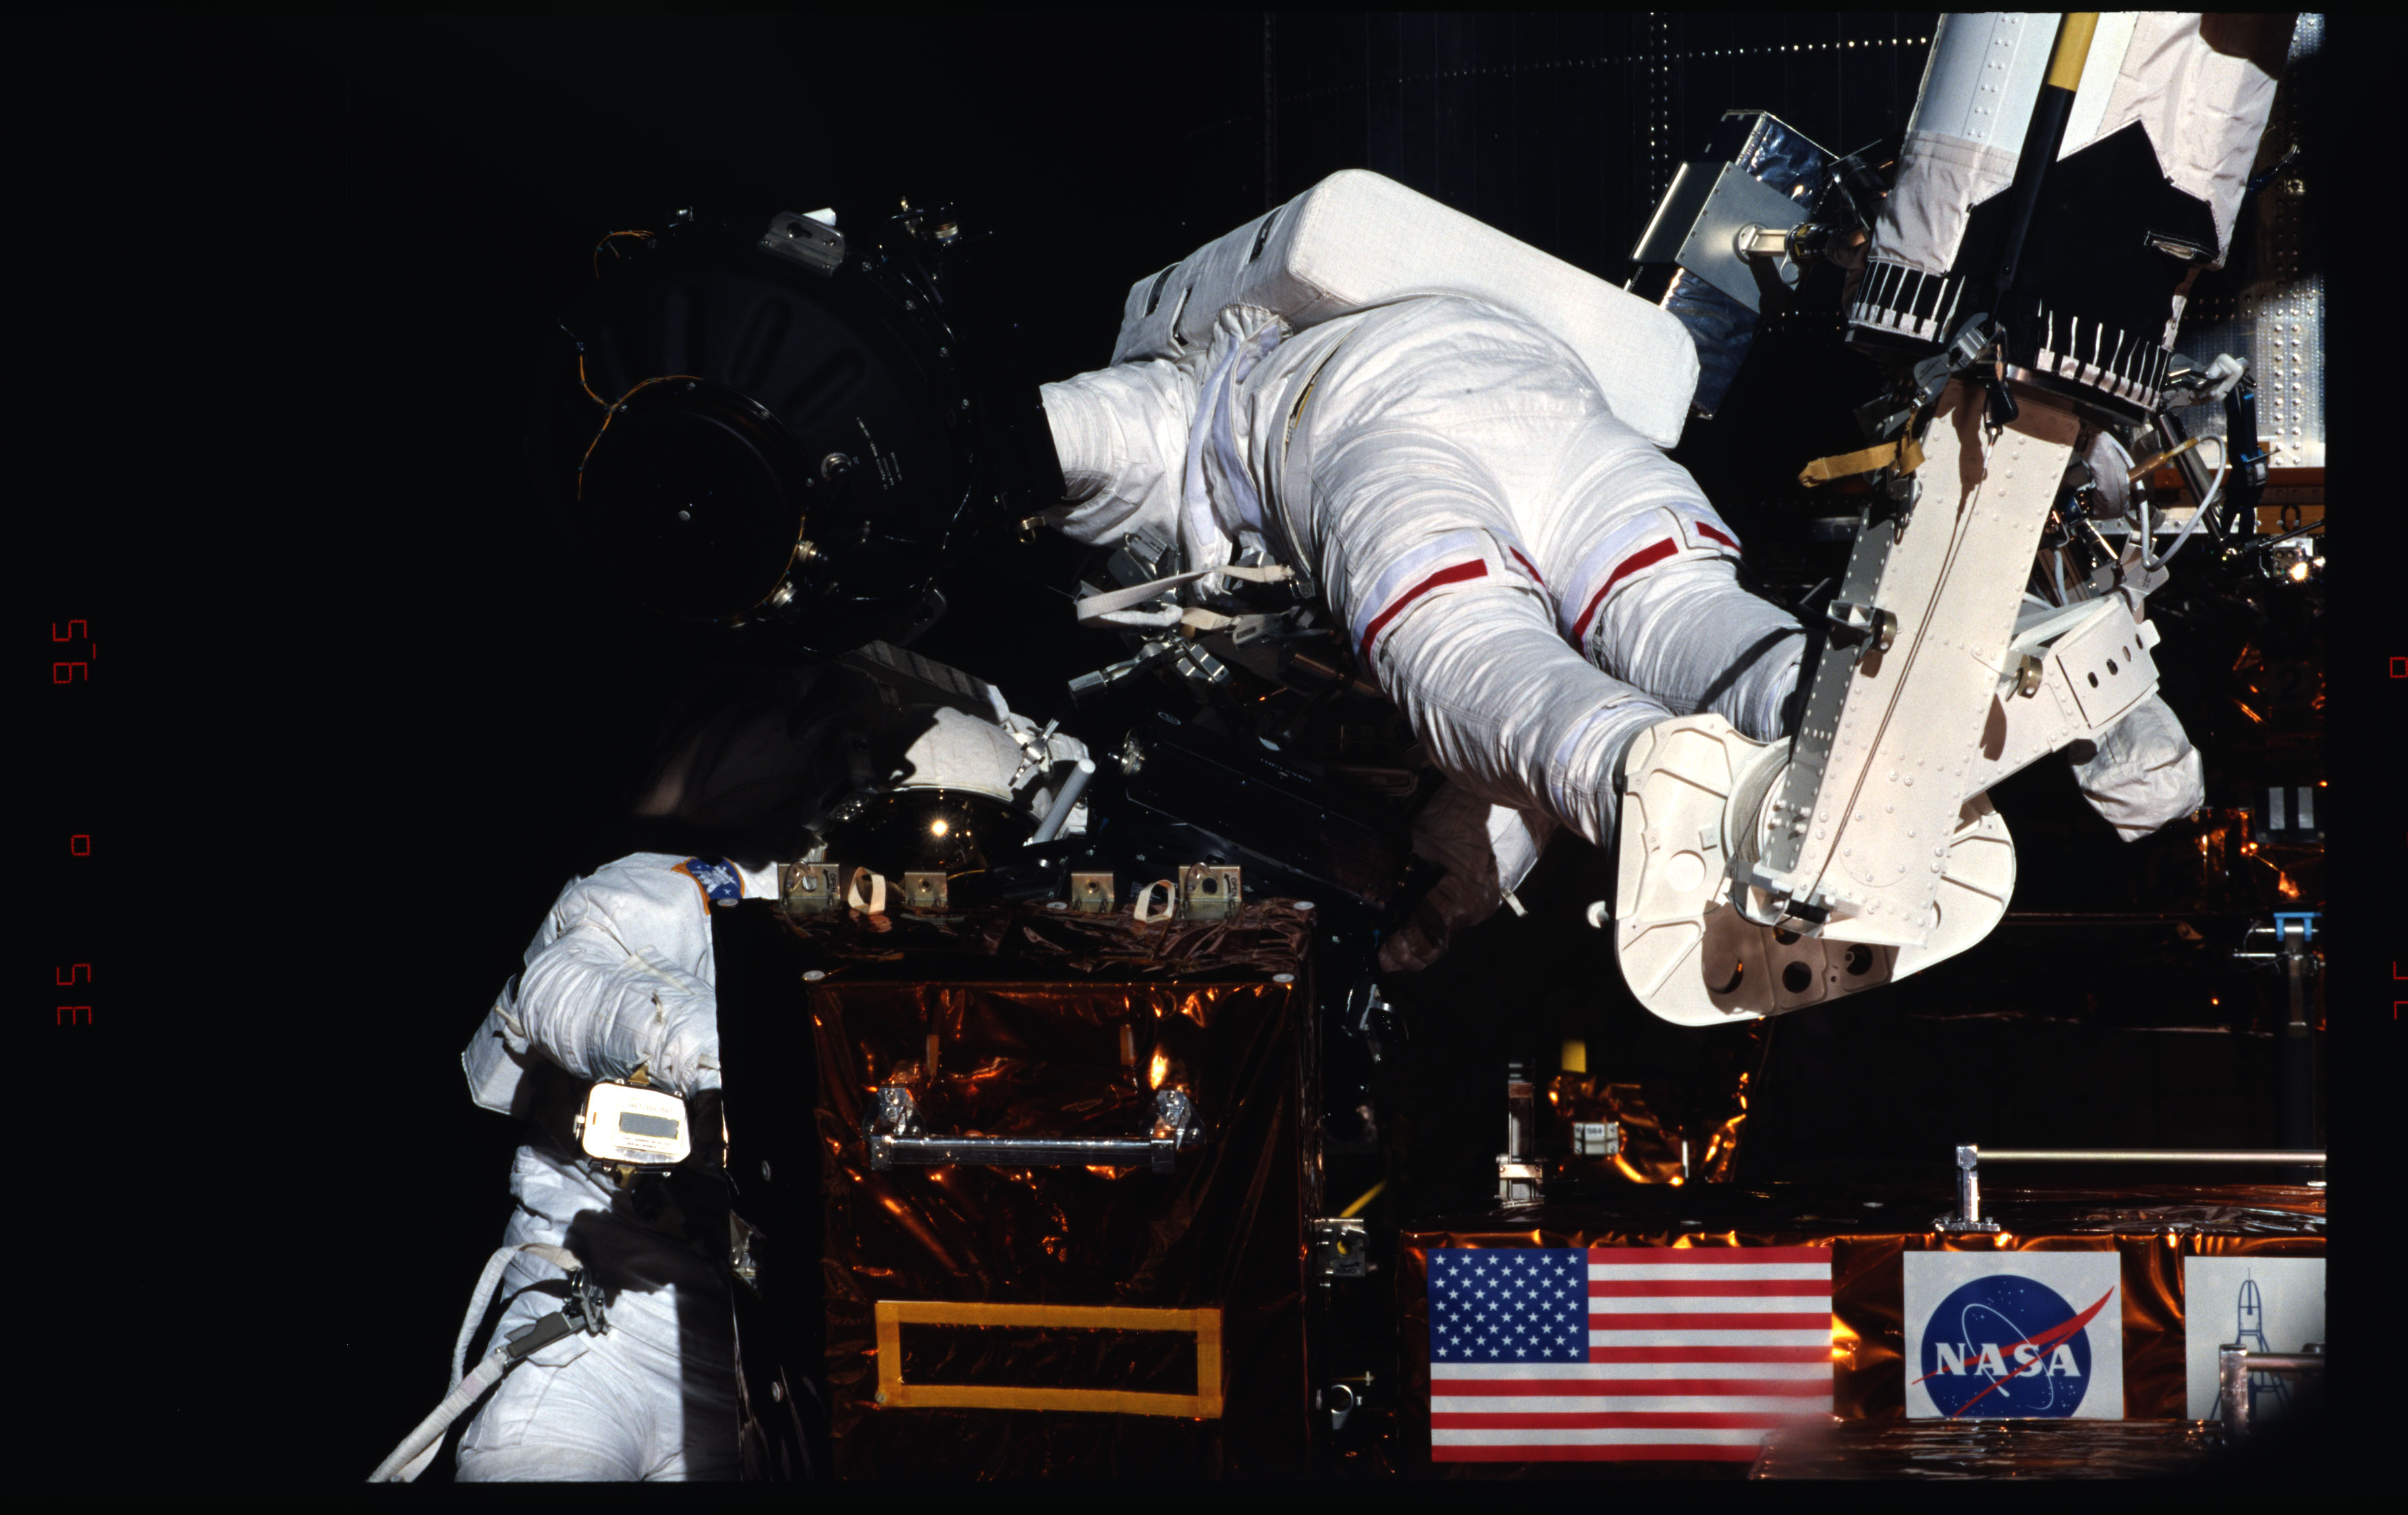 STS082-339-011 - STS-082 - EVA 3 activity on Flight Day 6 to service the Hubble Space Telescope